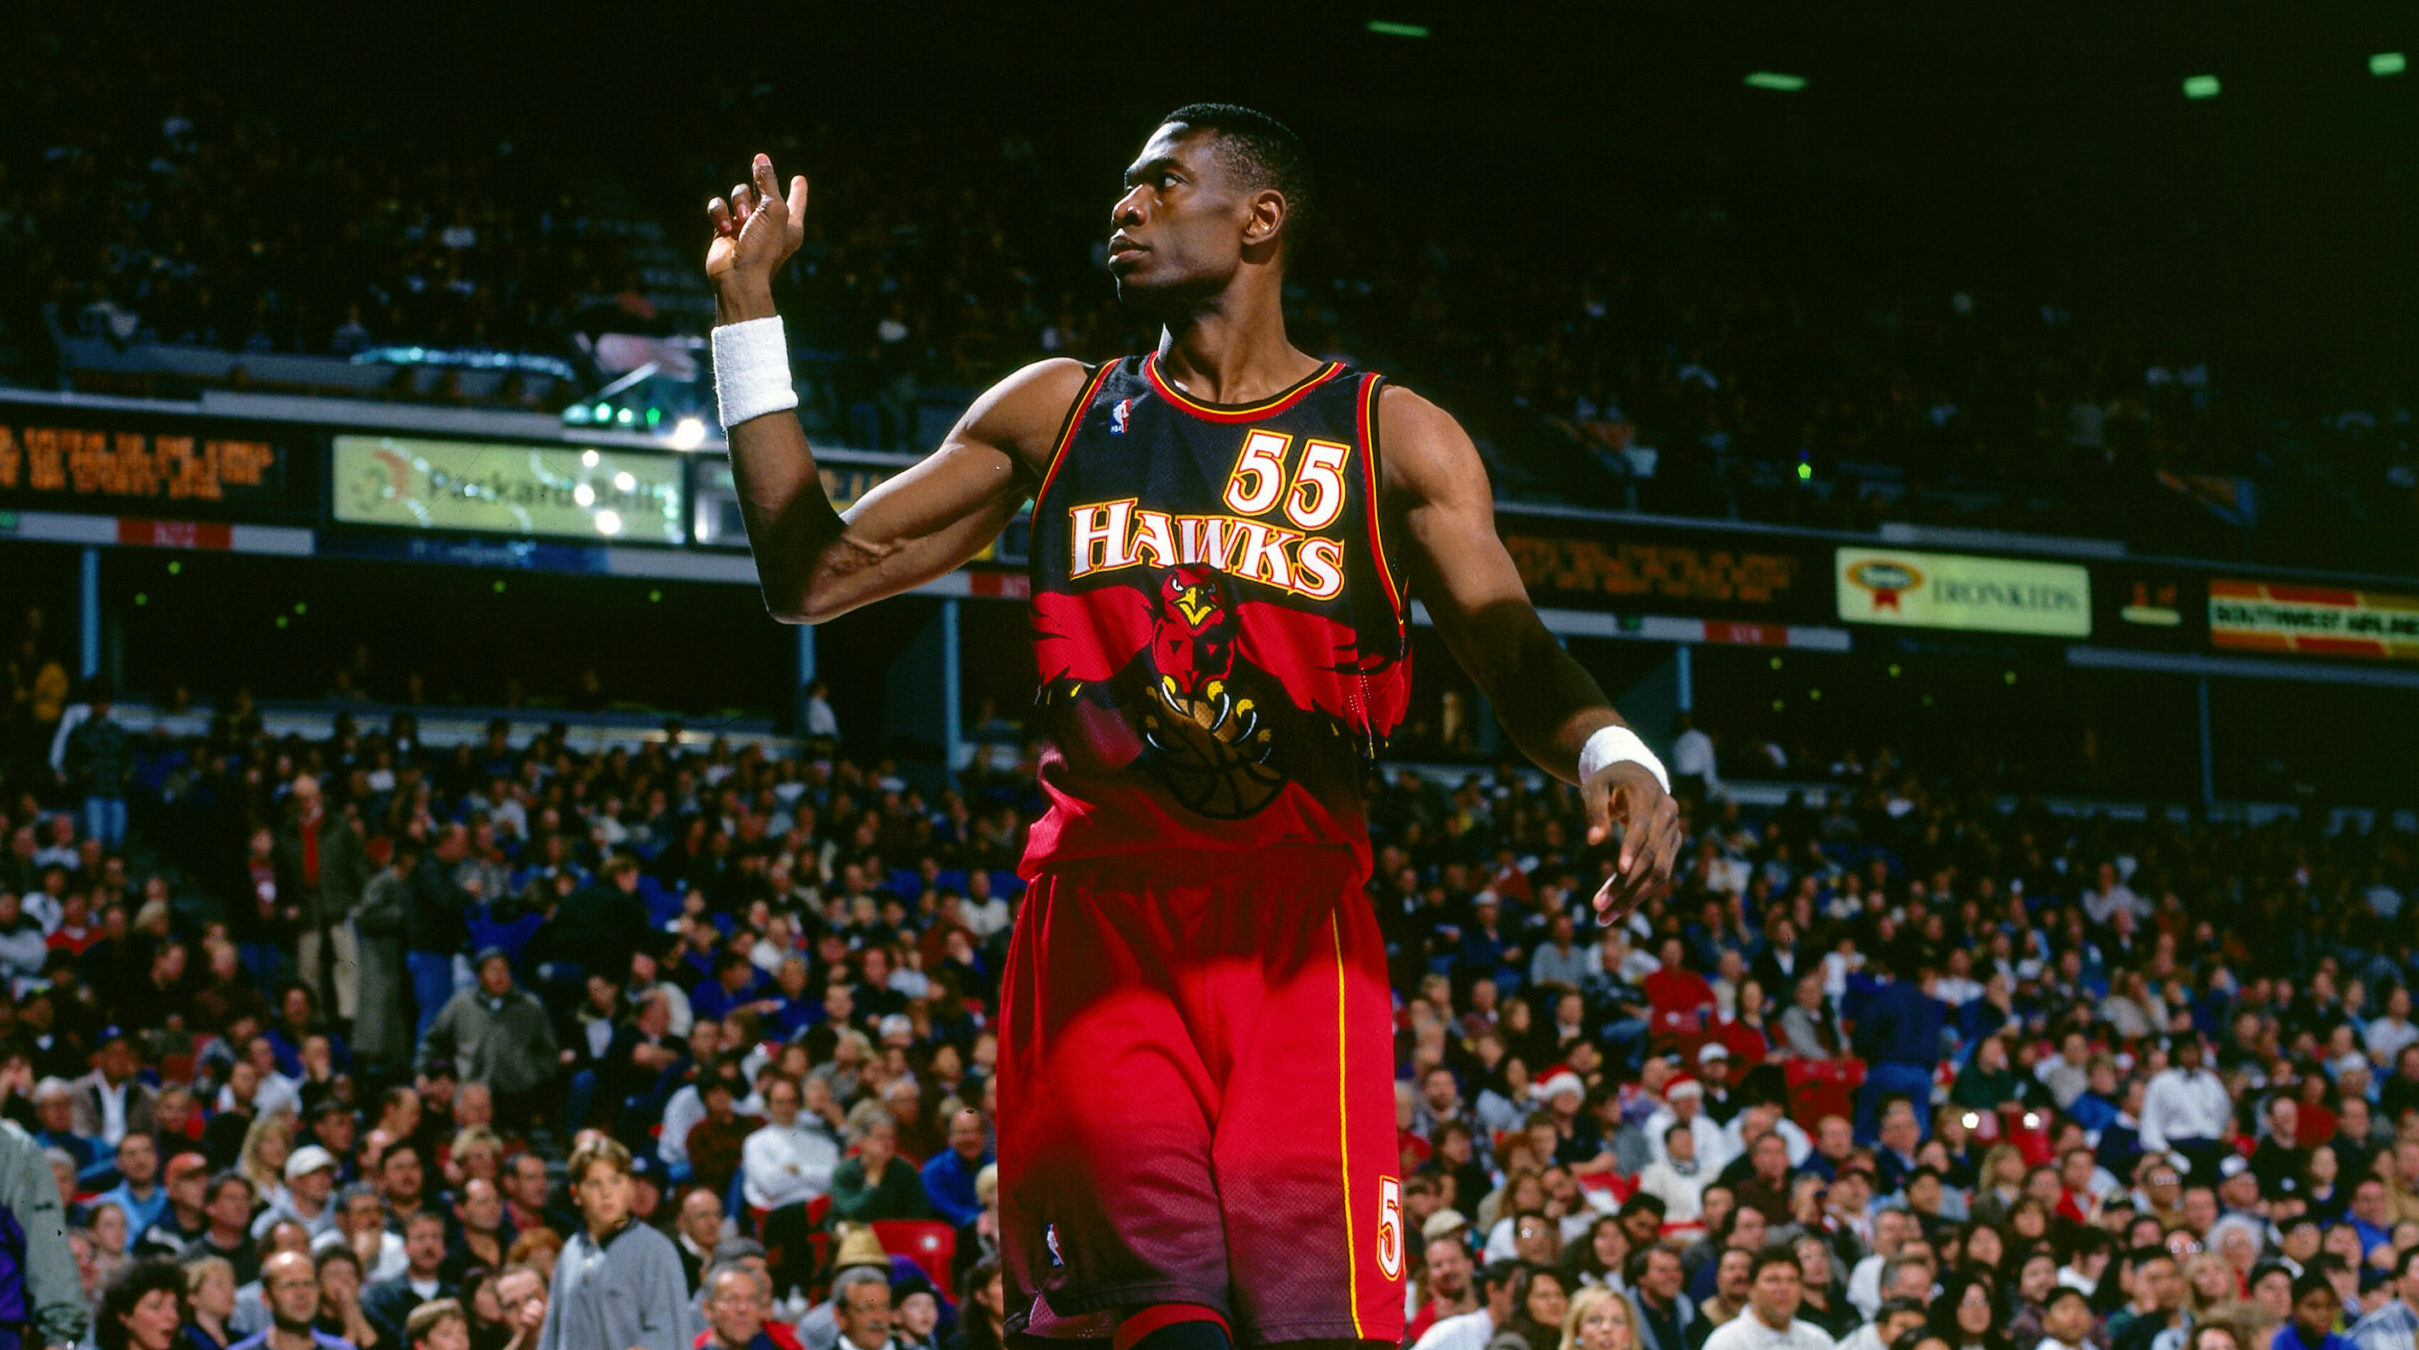 Defensive Player Ladder: Q&A with NBA legend Dikembe Mutombo